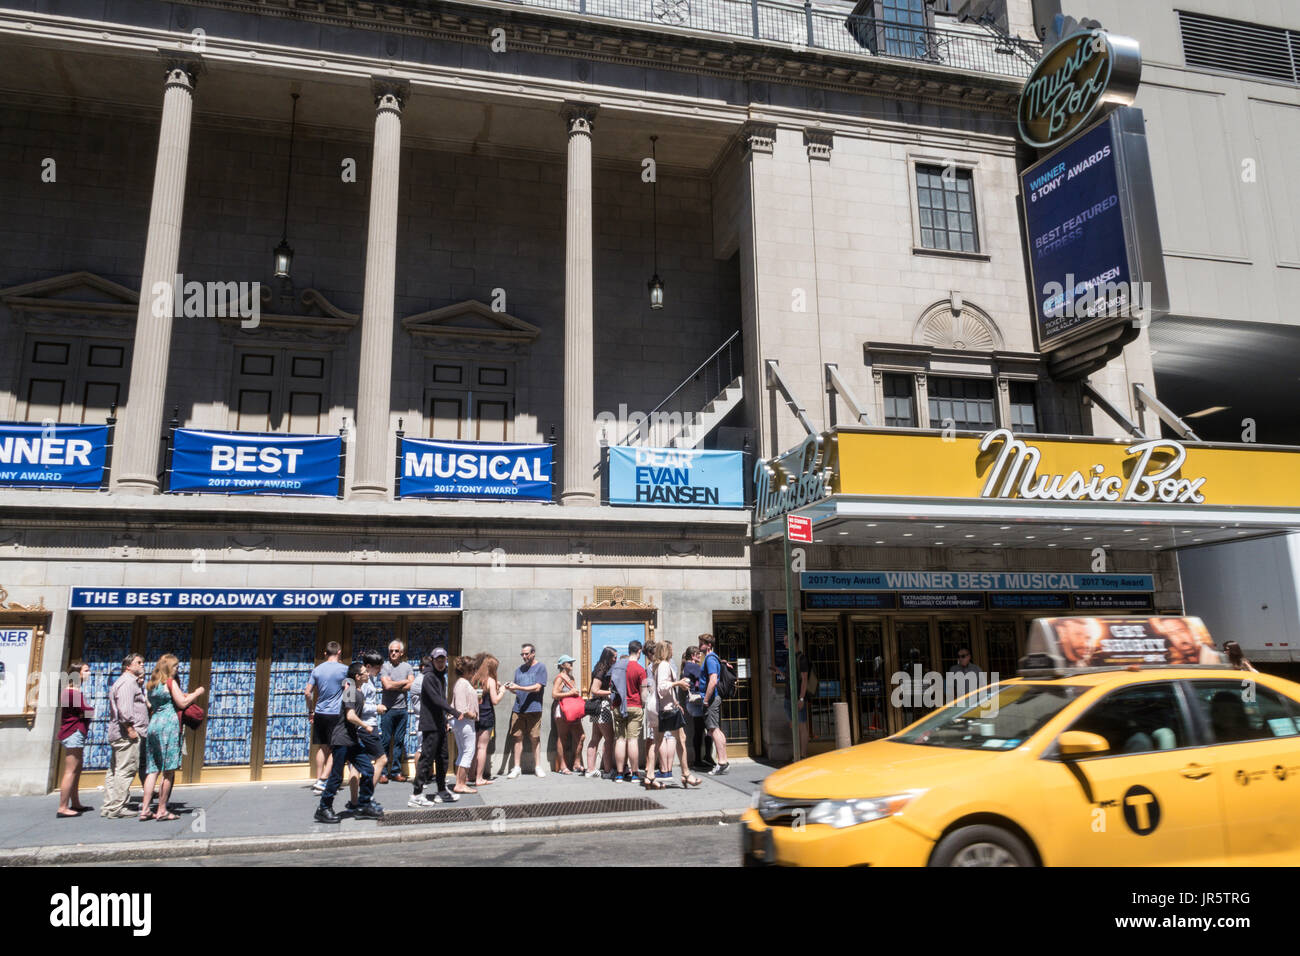 Music Box Theatre Marquee, Times Square, New York City, USA - Stock Image